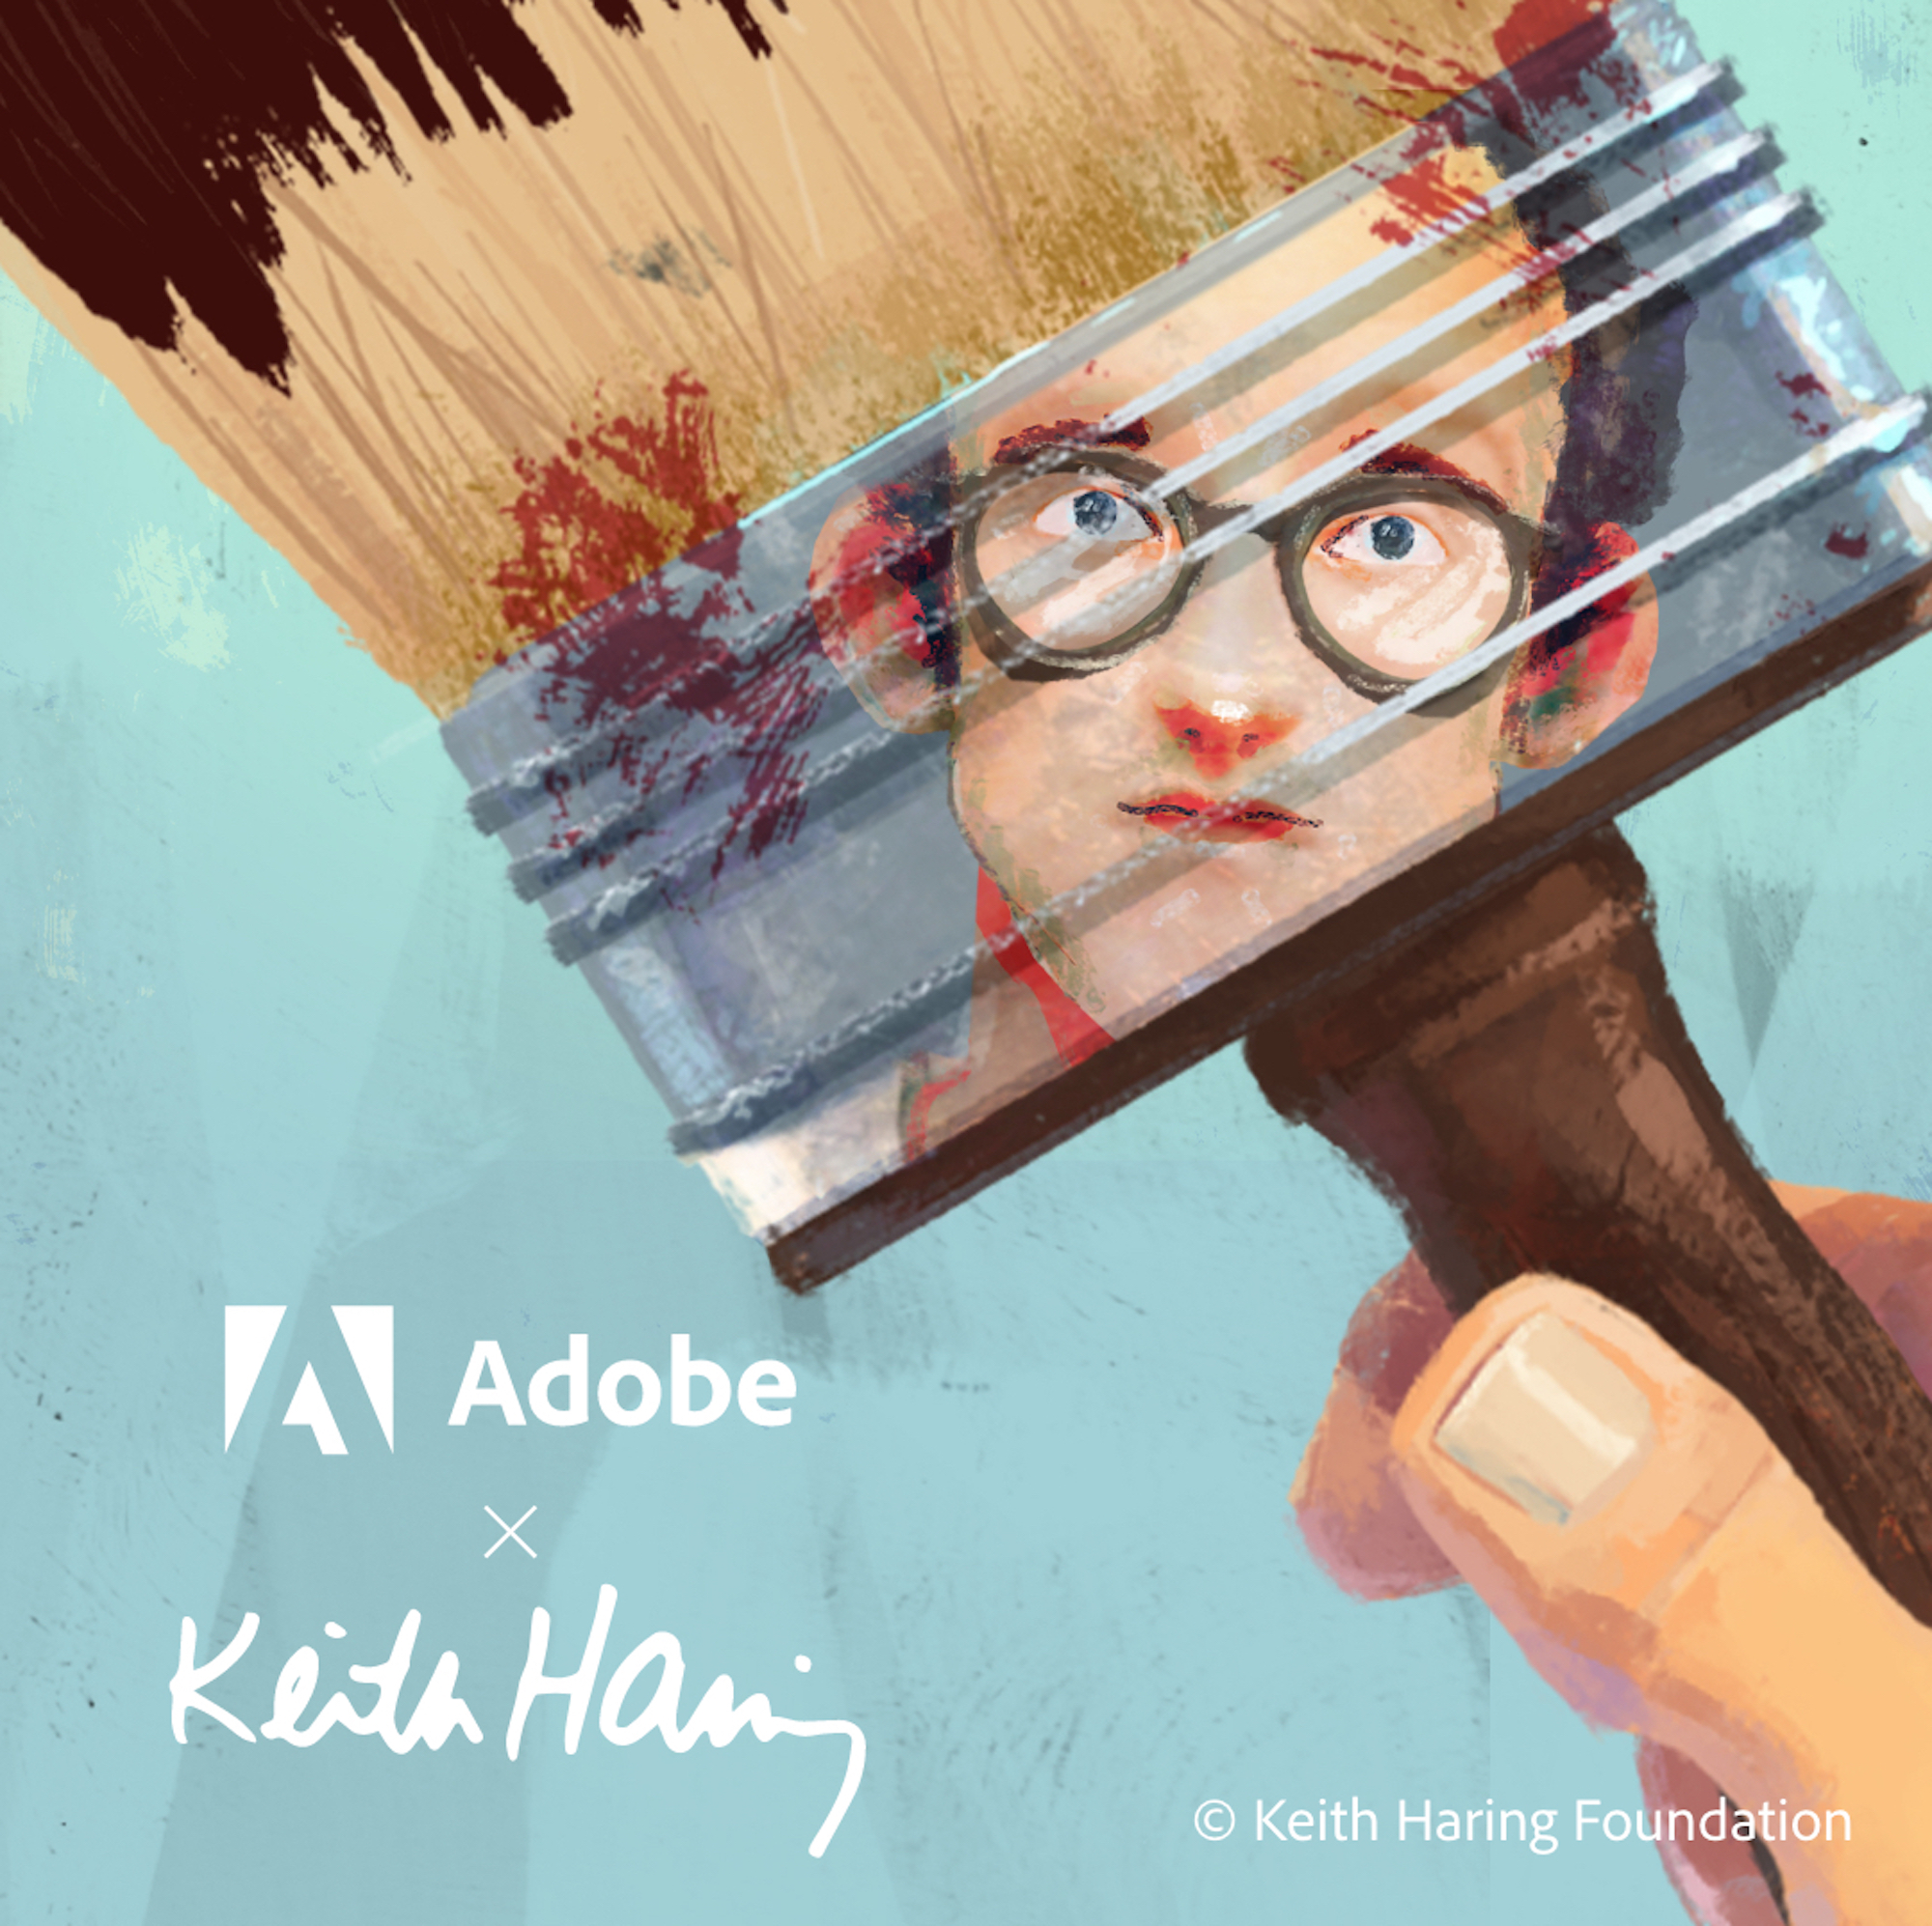 Keith Haring Adobe brushes reflect